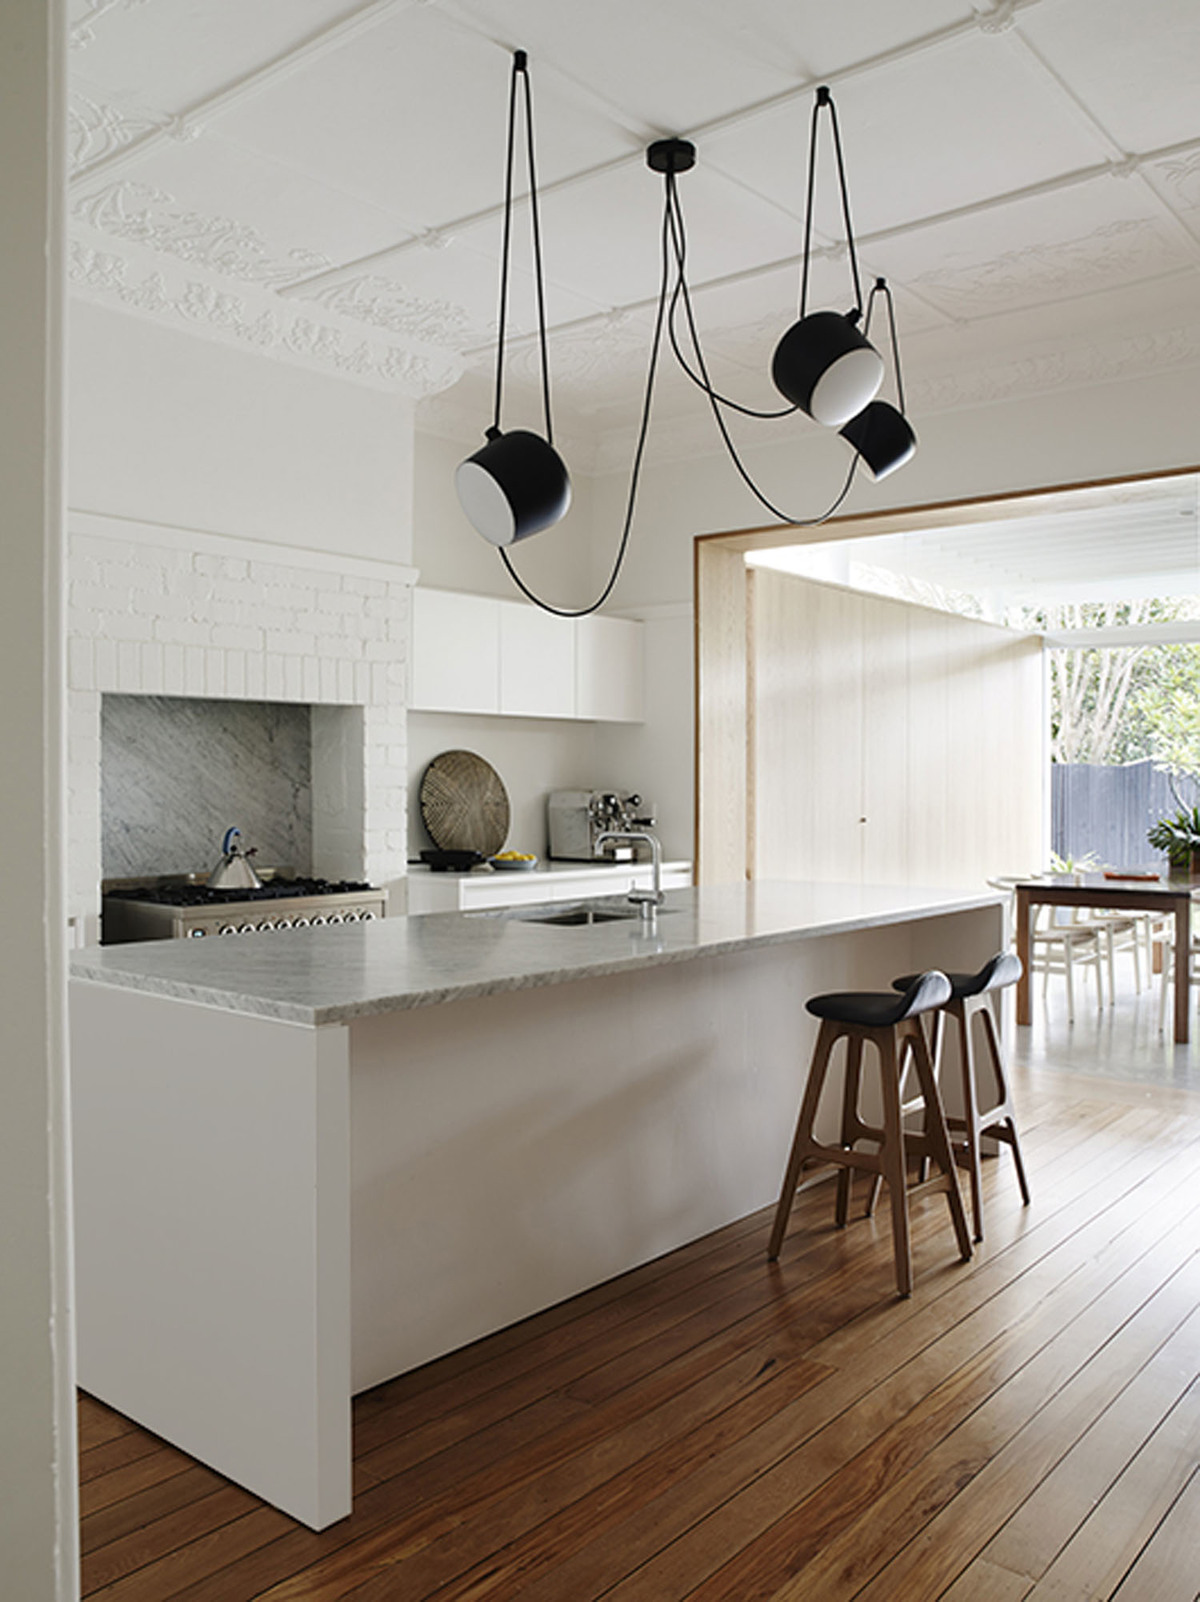 Coogee House - Local Timber Kitchen - Madeleine Blanchfield Architects - Interior Archive